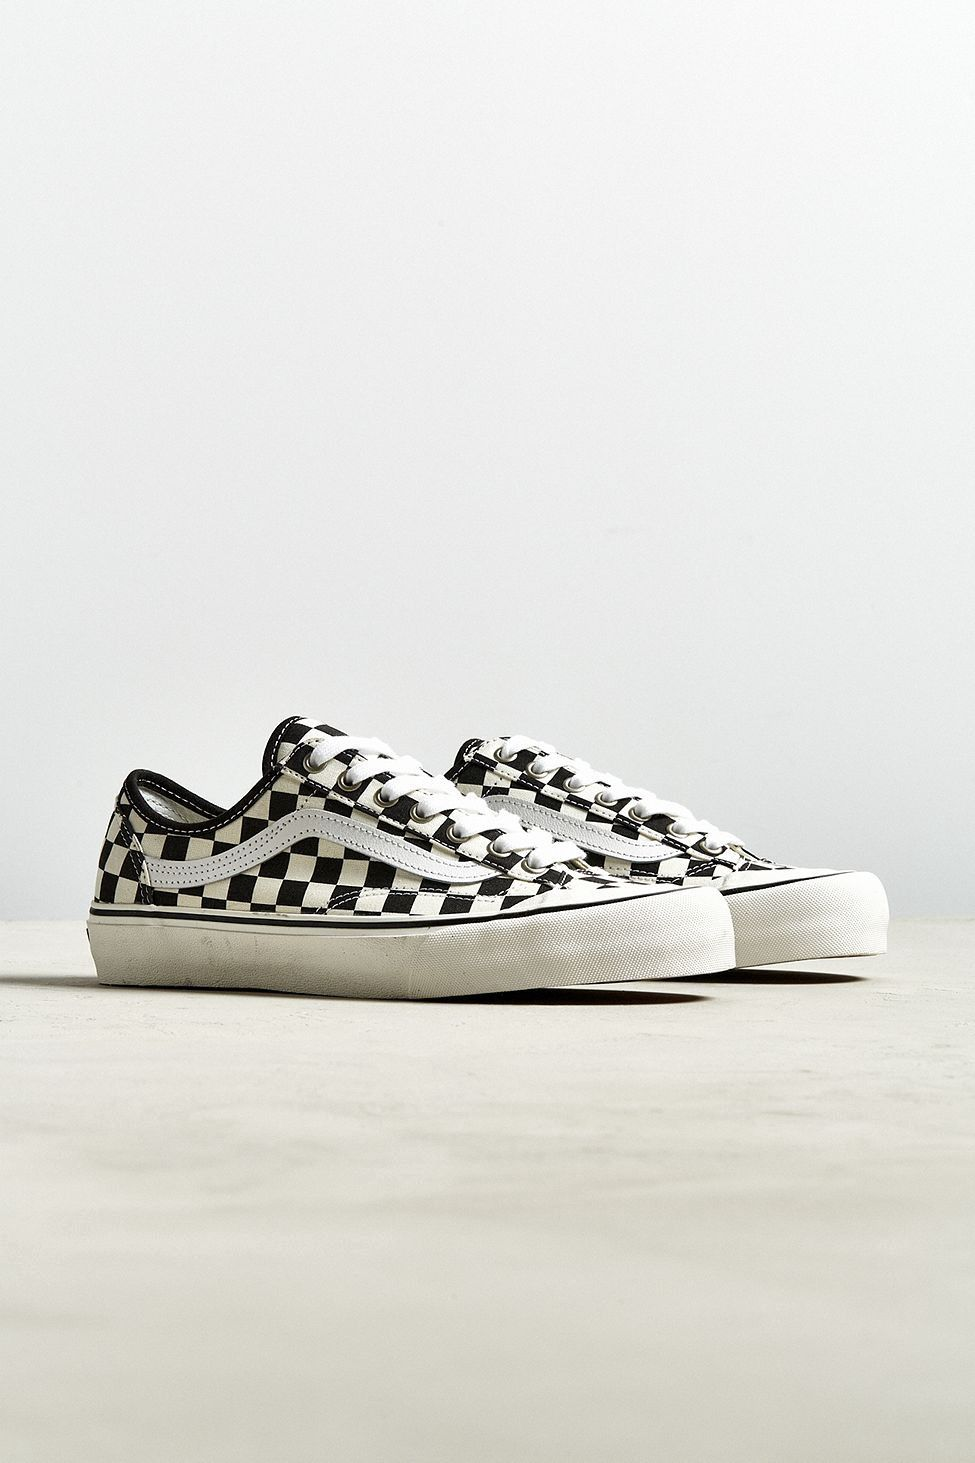 b52ea8f187 Urban Outfitters Vans Style 36 Decon Sf Checkerboard Sneaker - Black +  White One Size